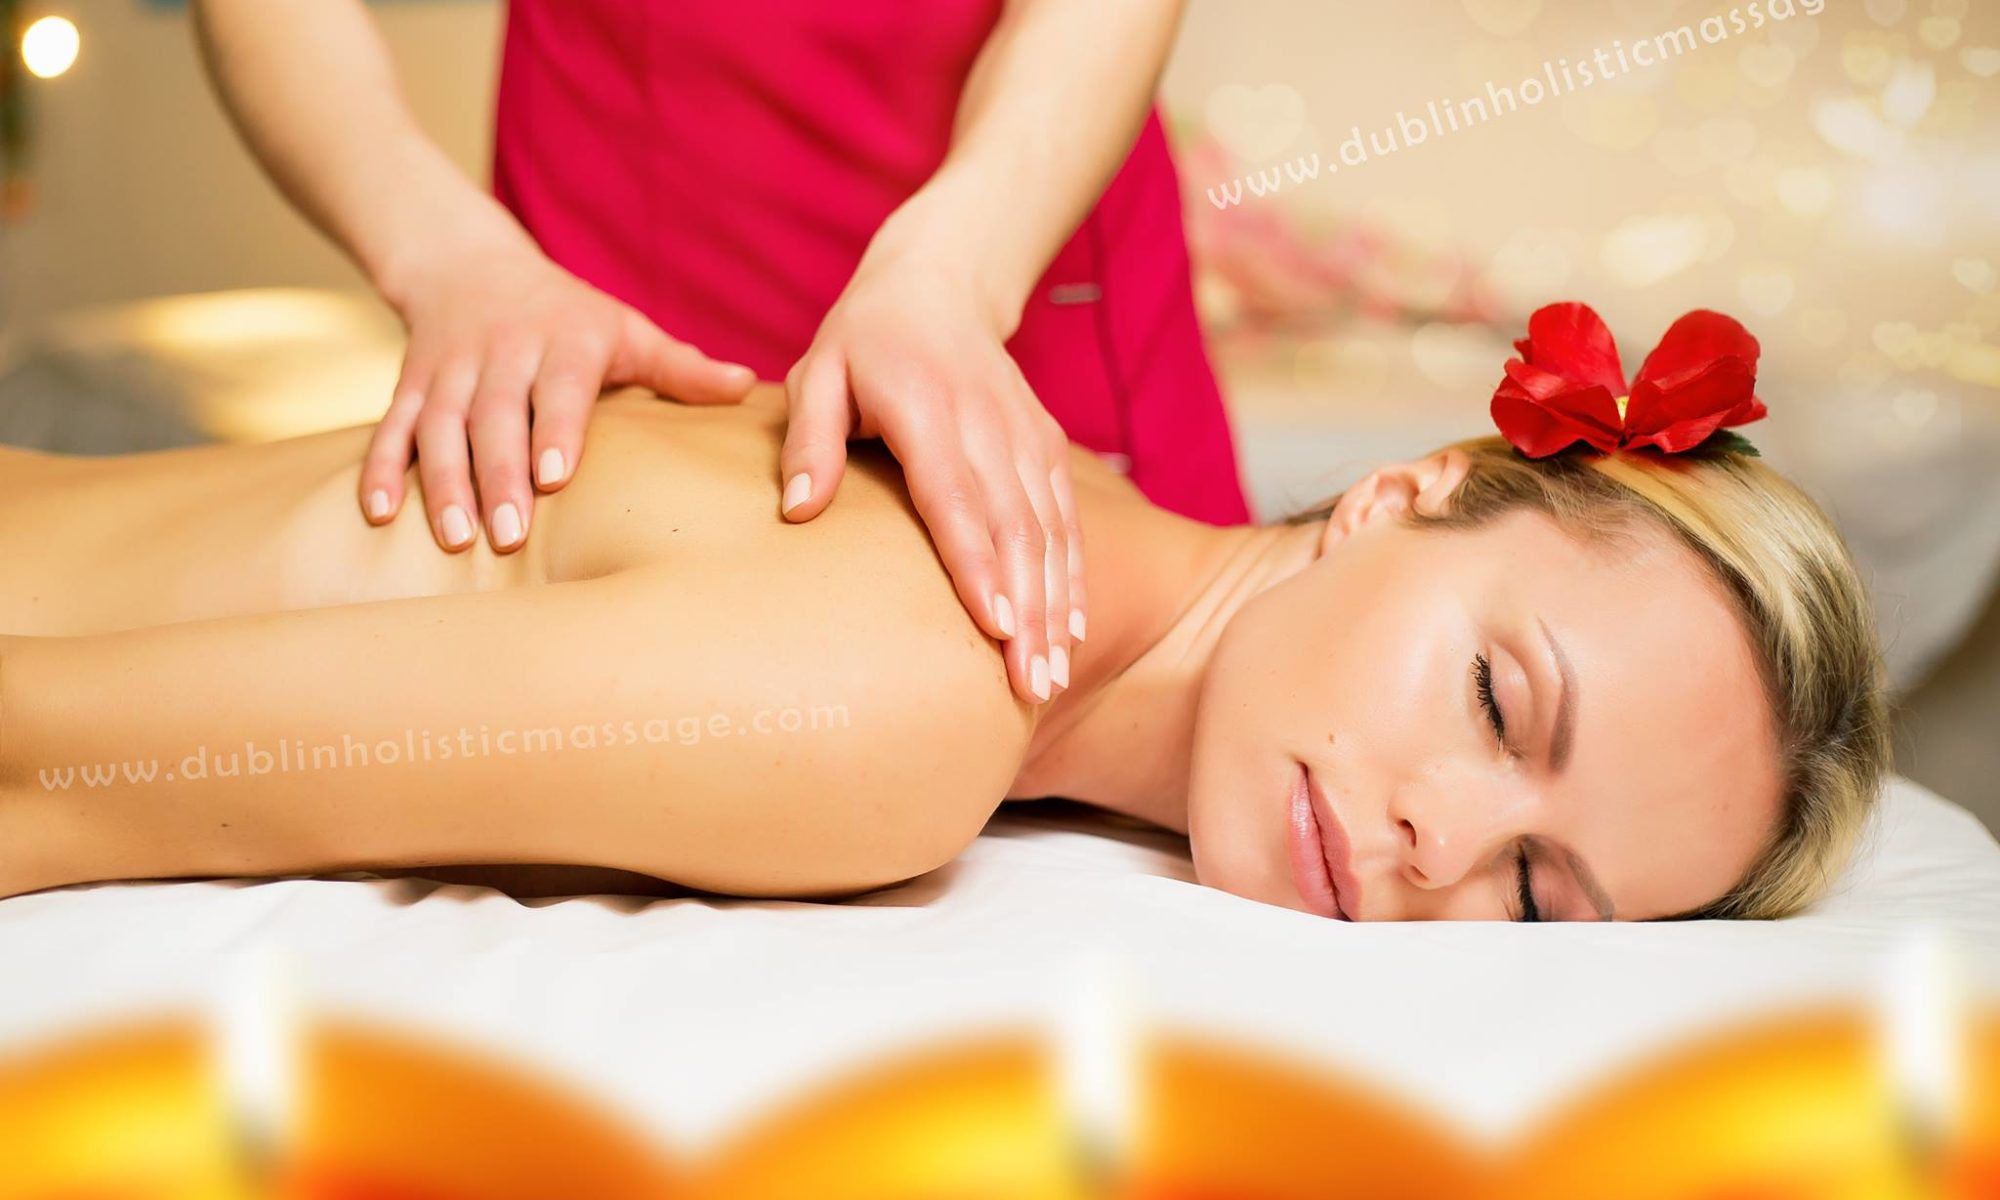 Dublin Holistic Massage